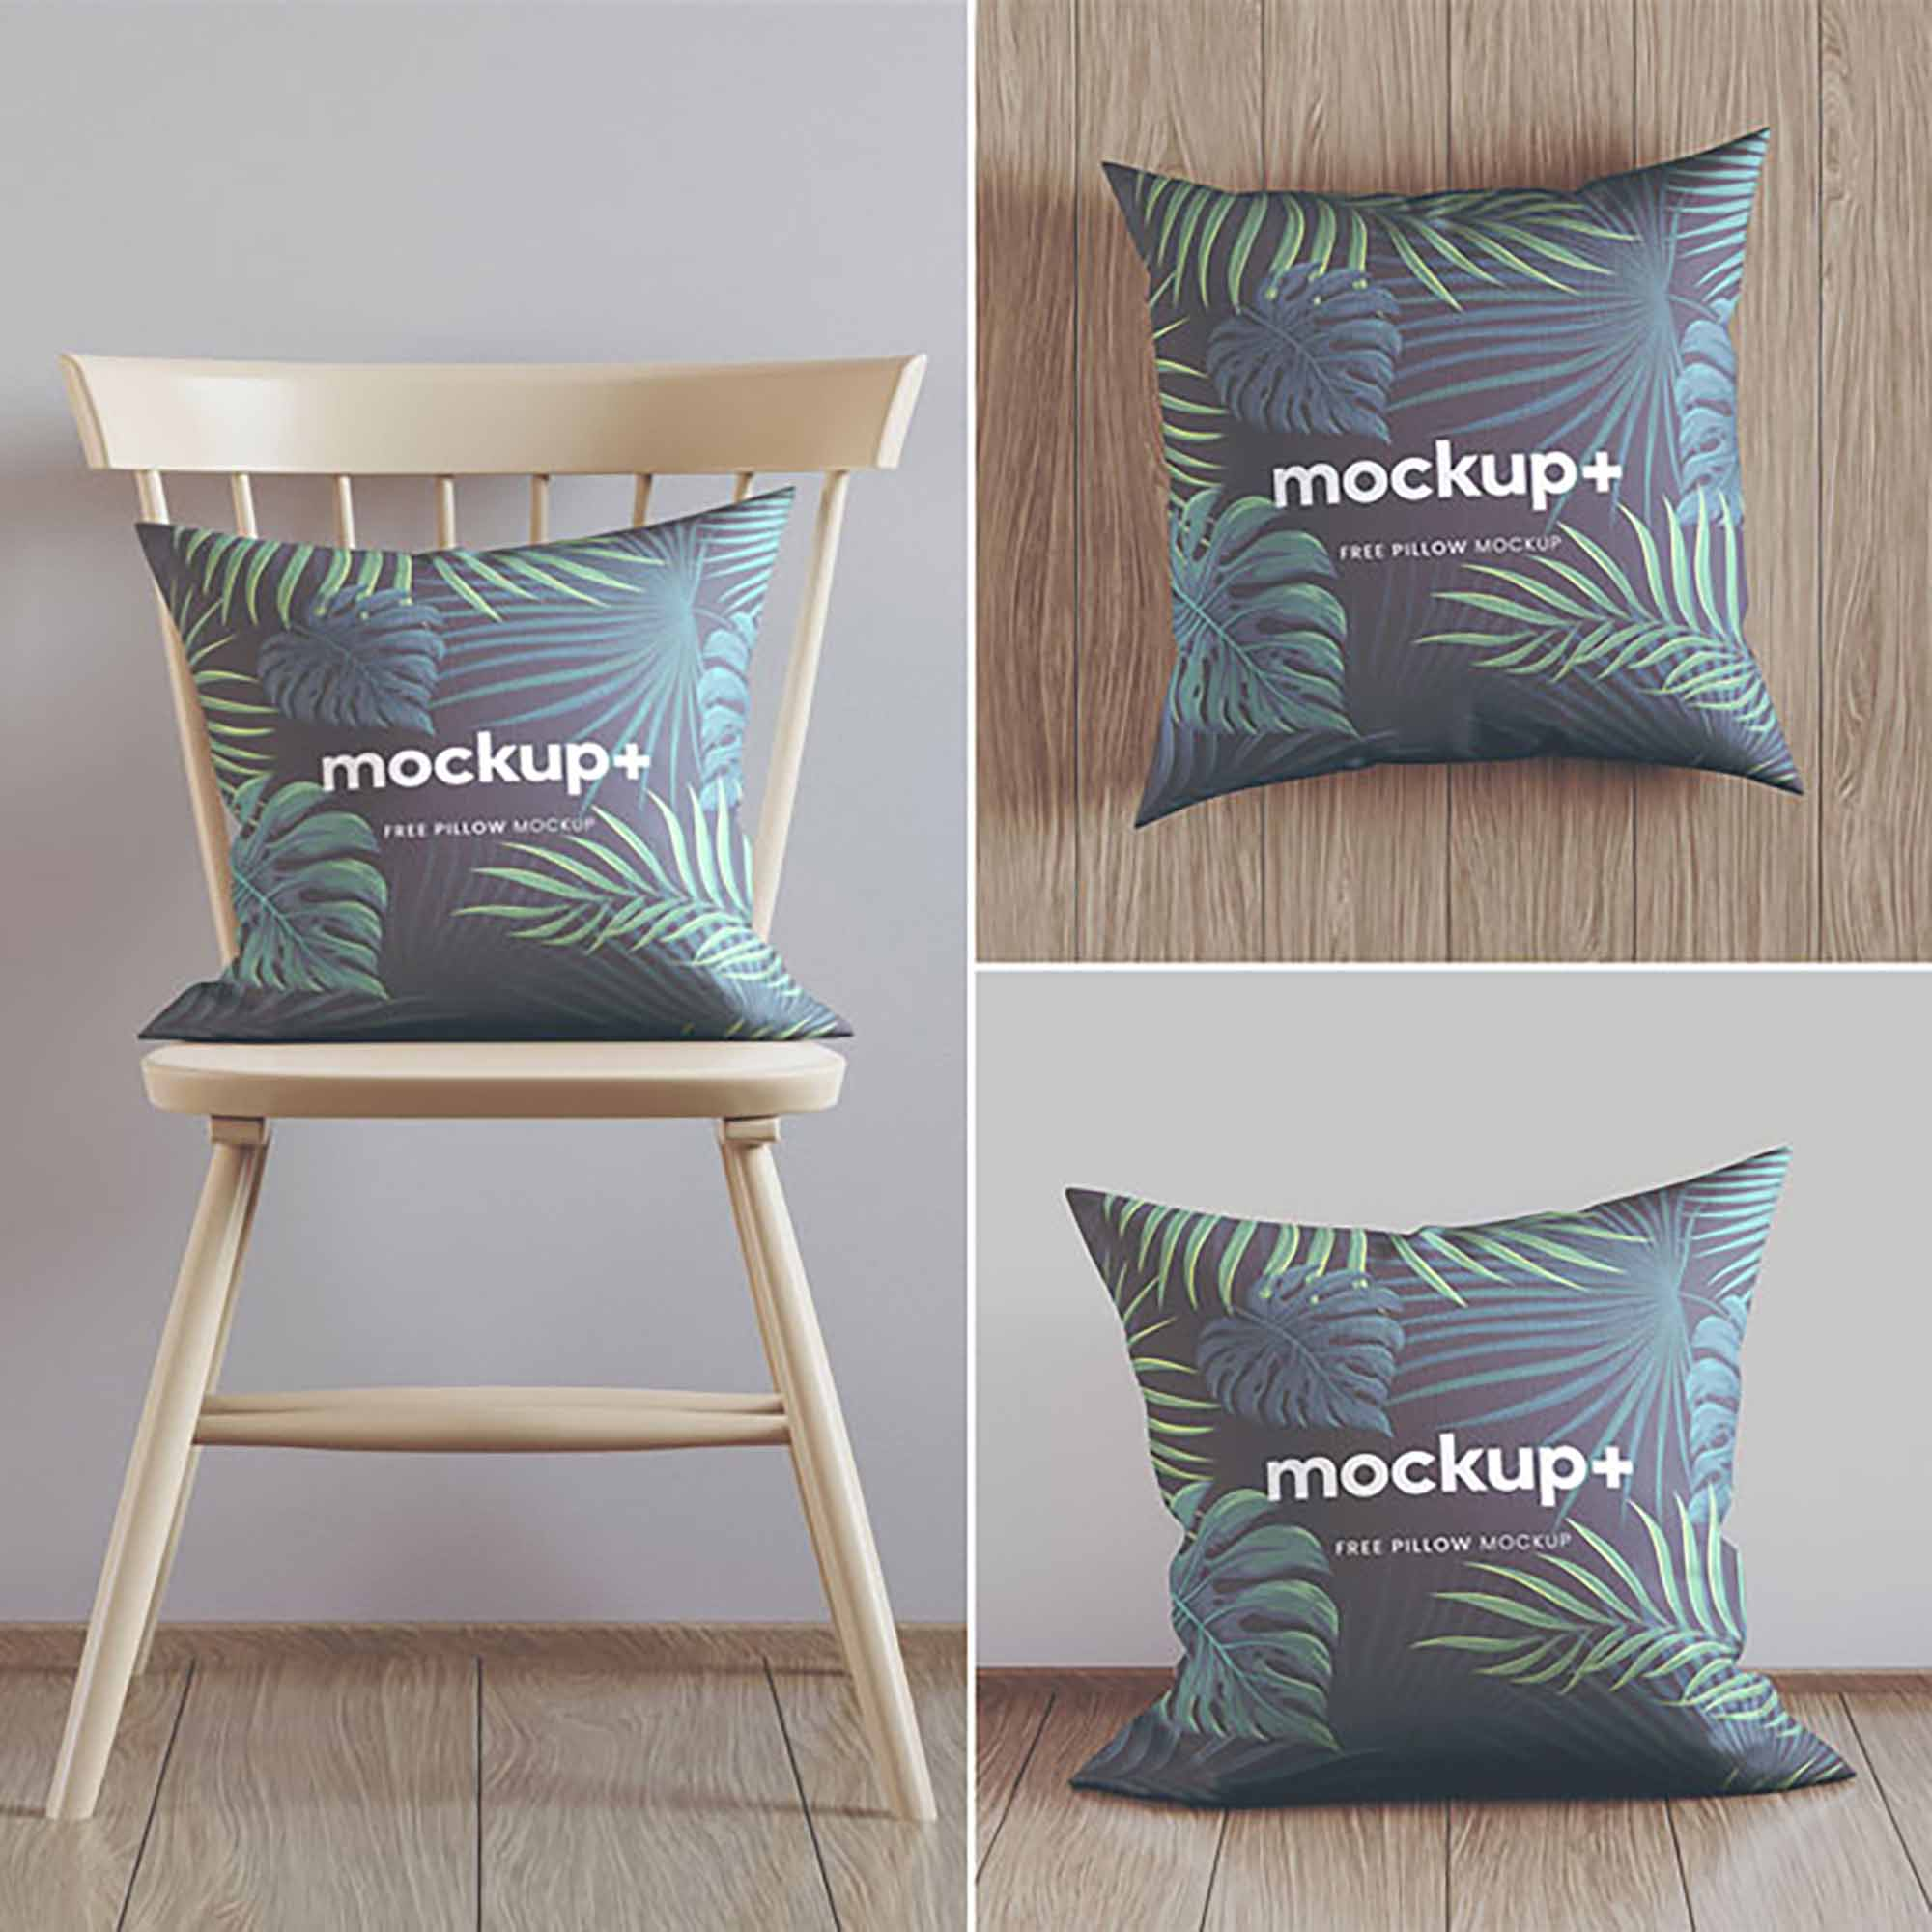 Pillow on Chair Mockup 2